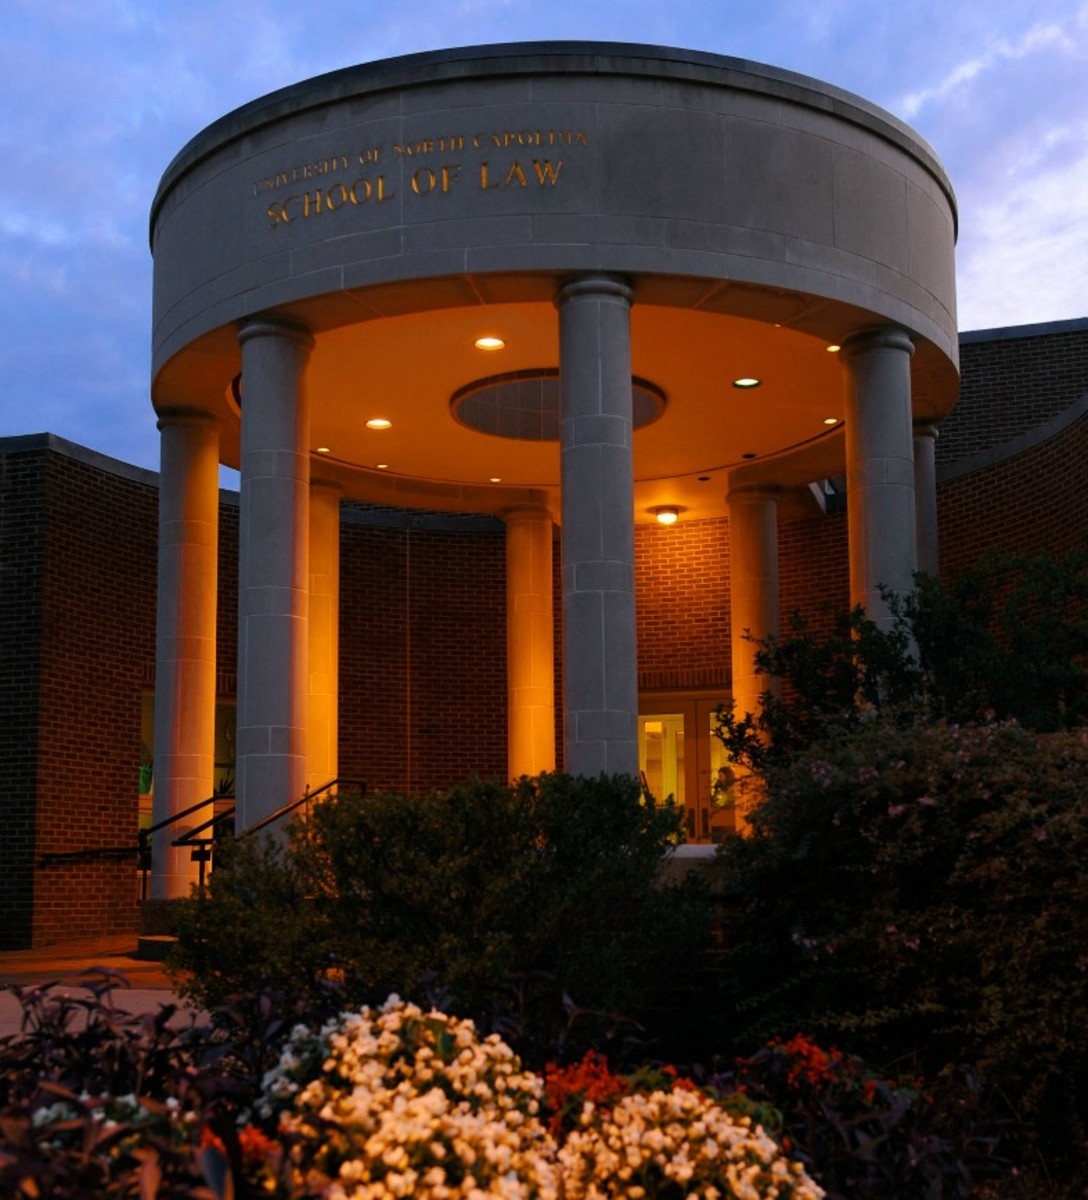 The Van Hecke-Wettach Building at the UNC School of Law. (Photo: Donn Young/UNC)